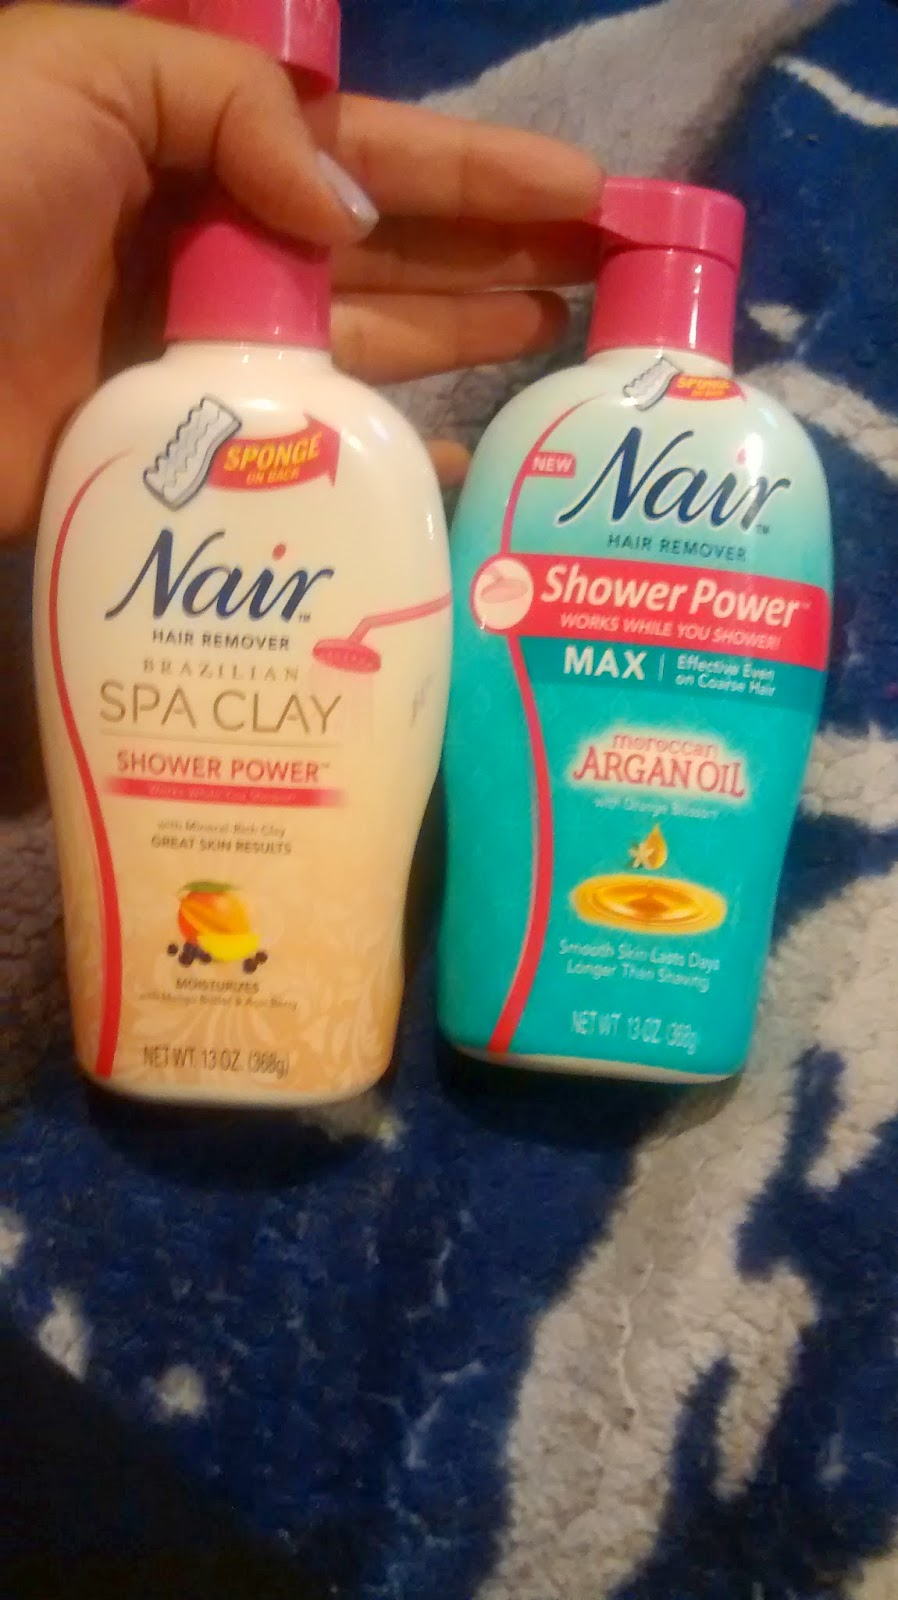 Nair Shower Power Max Argan Oil Brazilian Spa Clay